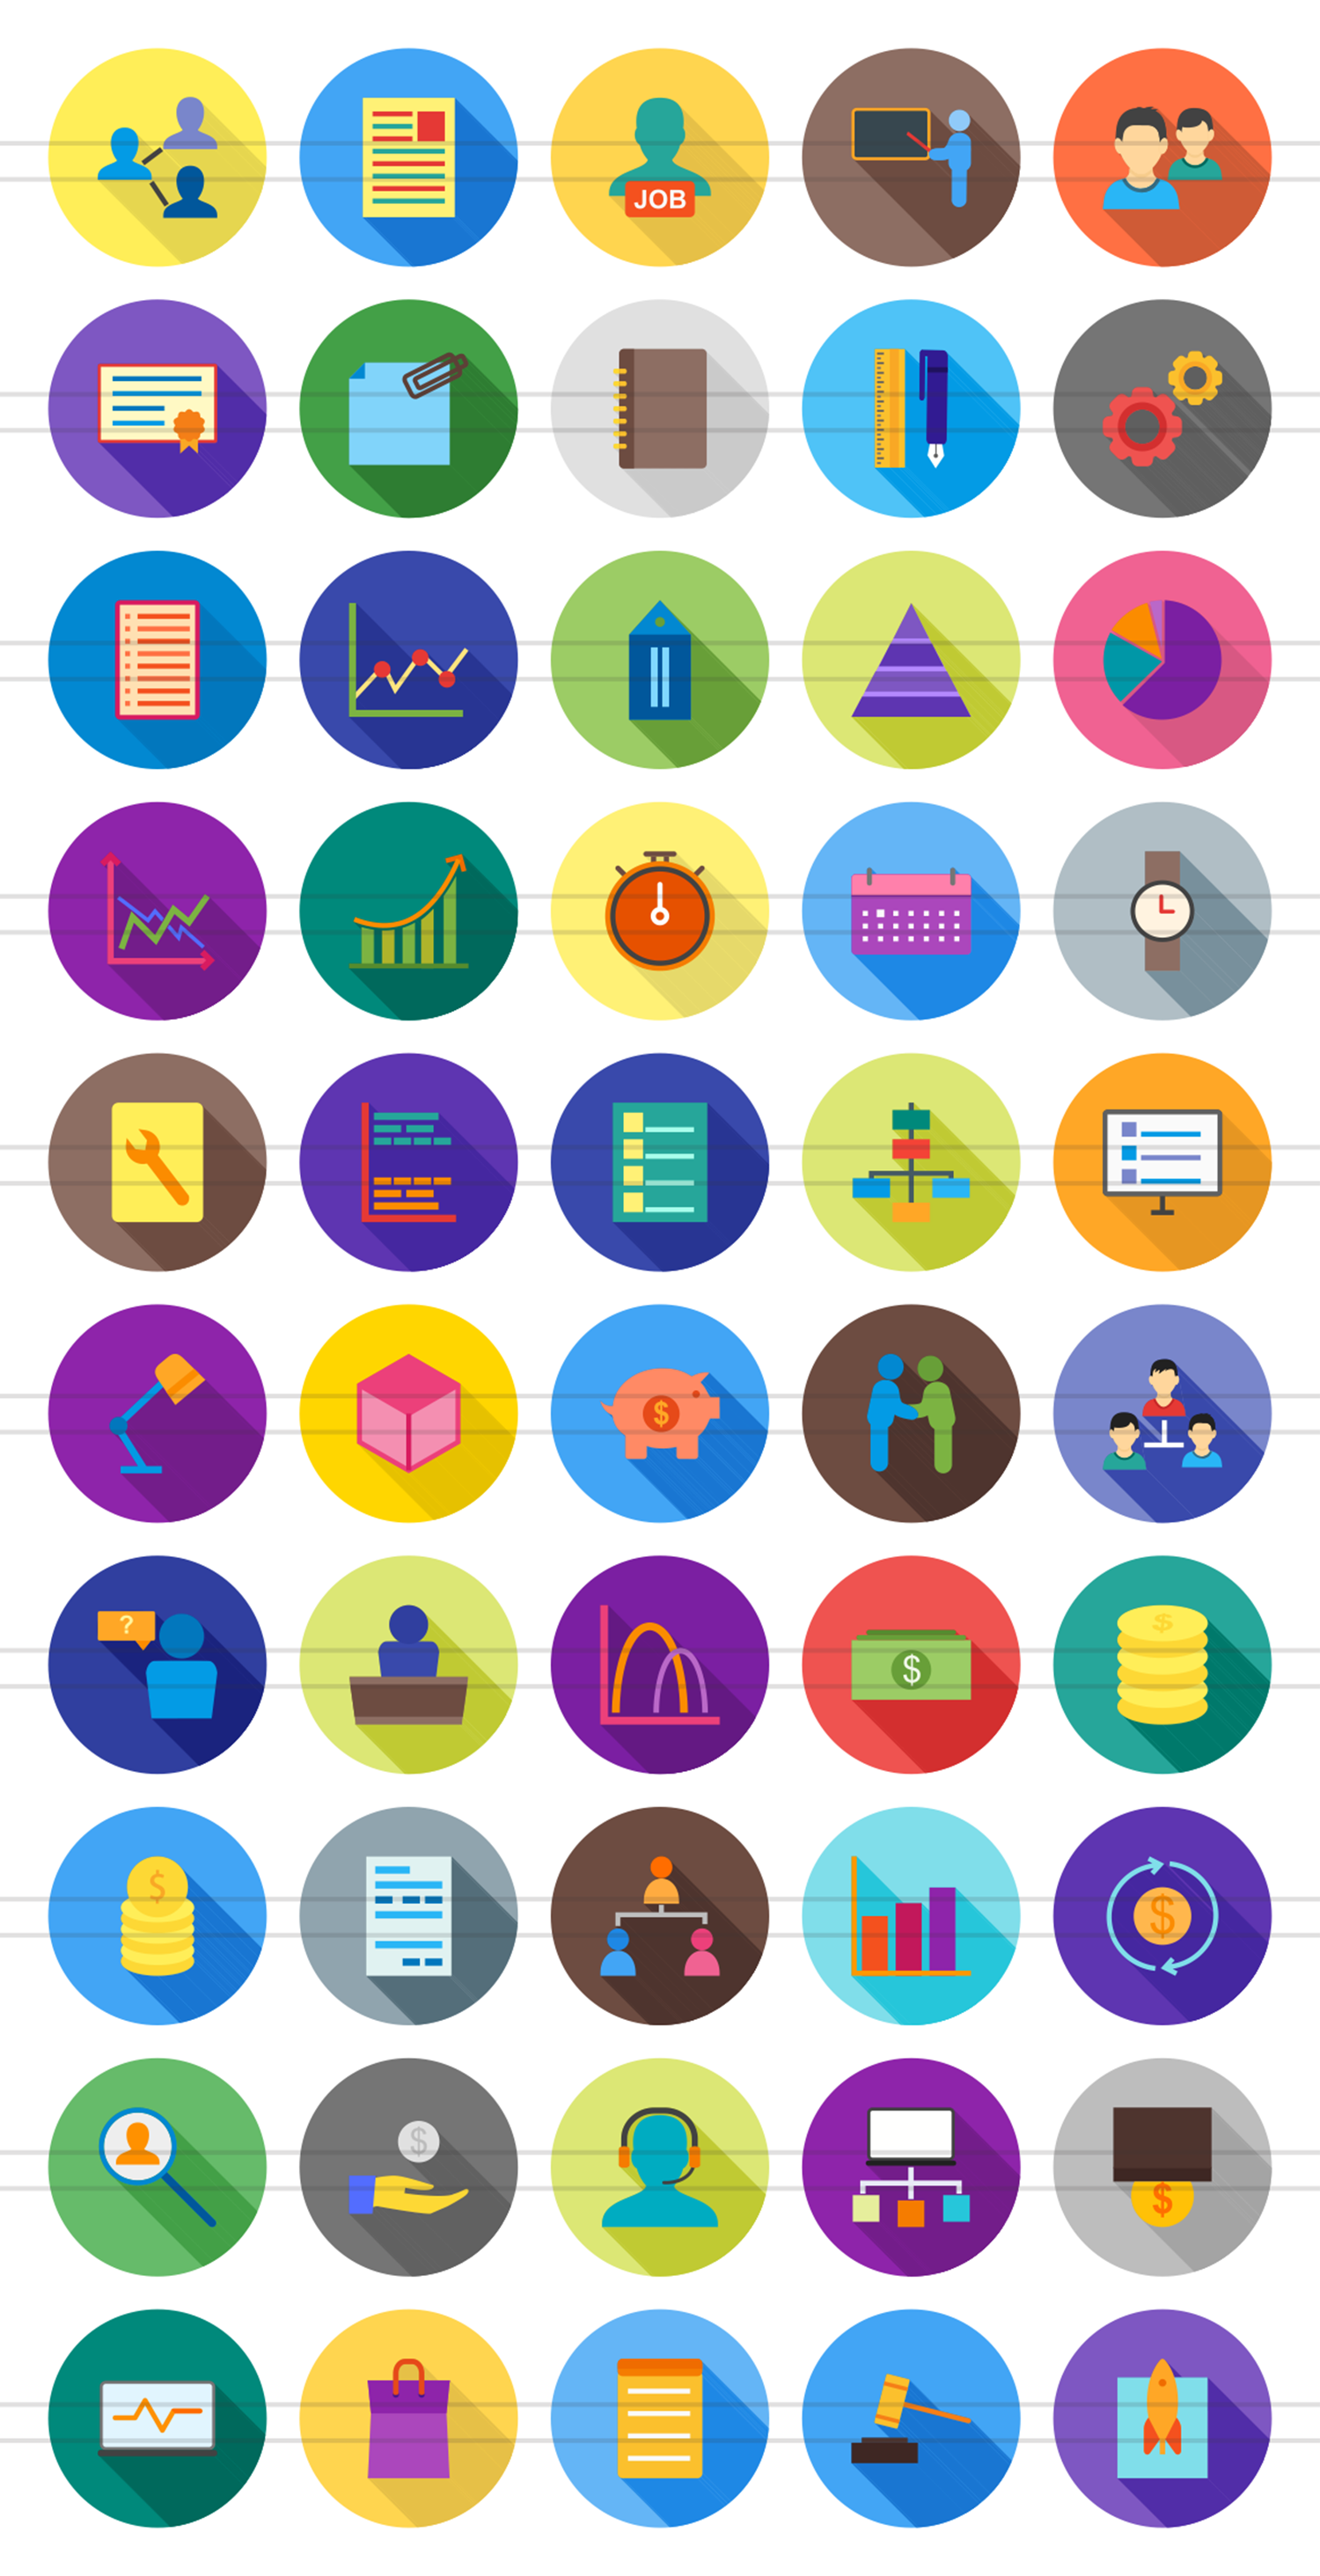 50 Business Management Flat Long Shadow Icons example image 2